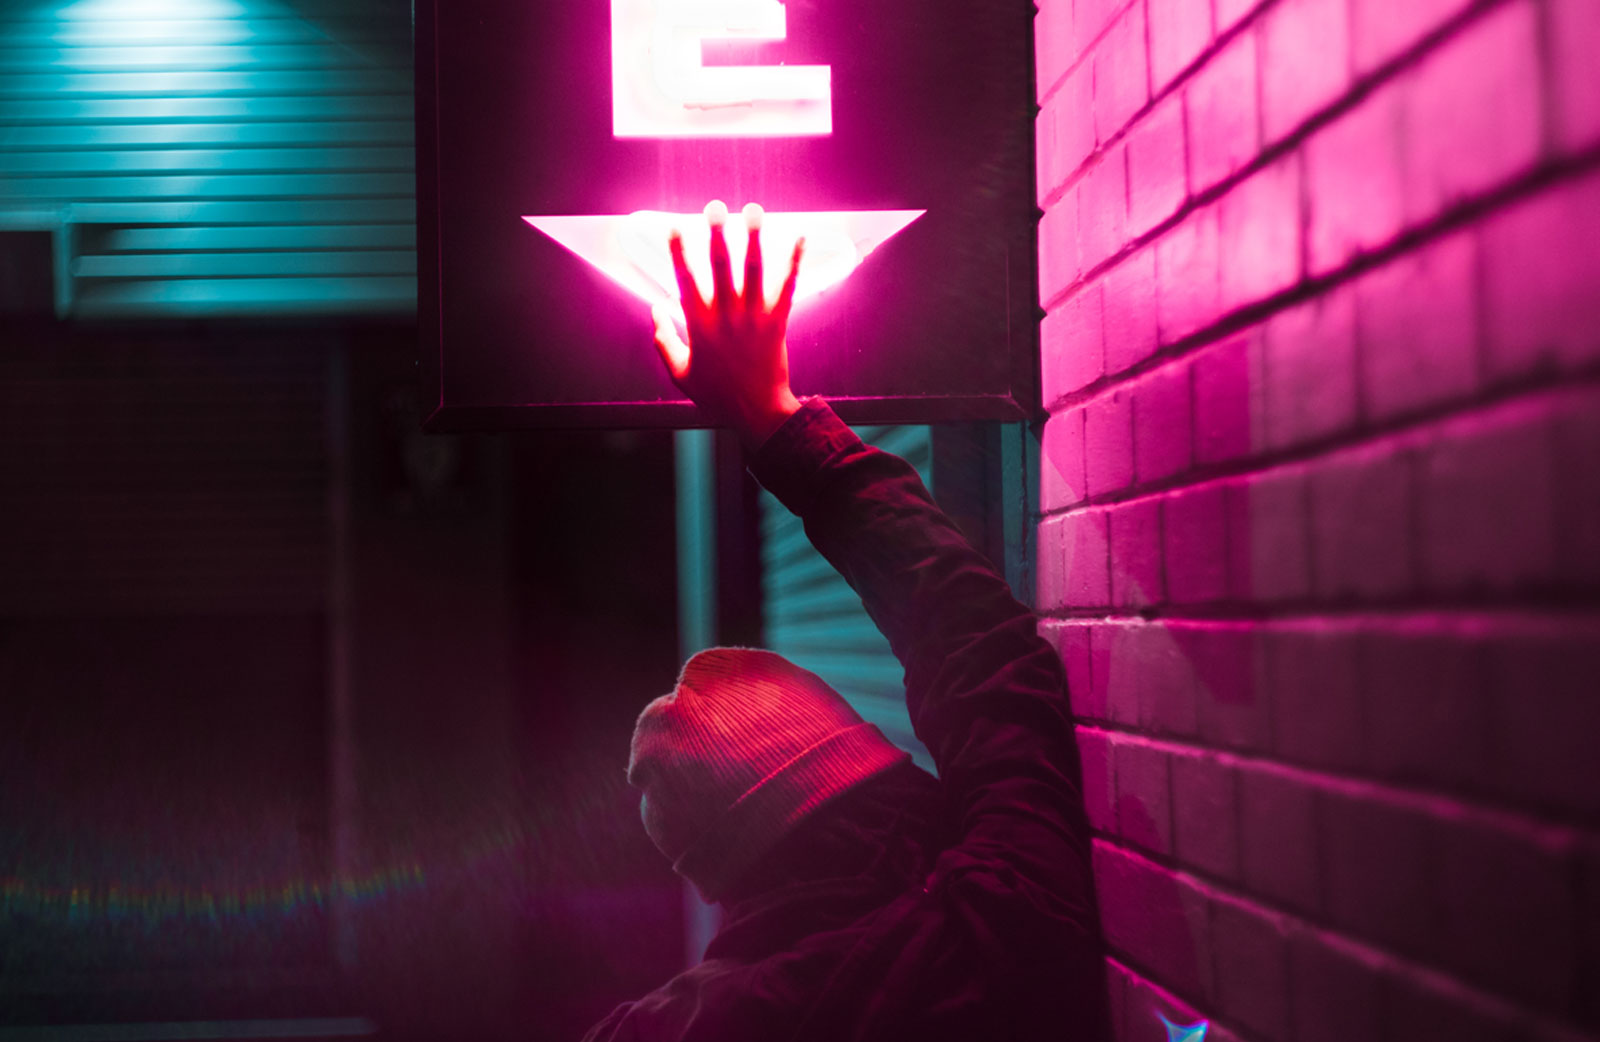 Back view of a person in a beanie with hand raised covering pink neon light sign symbolising digital life & it's activation